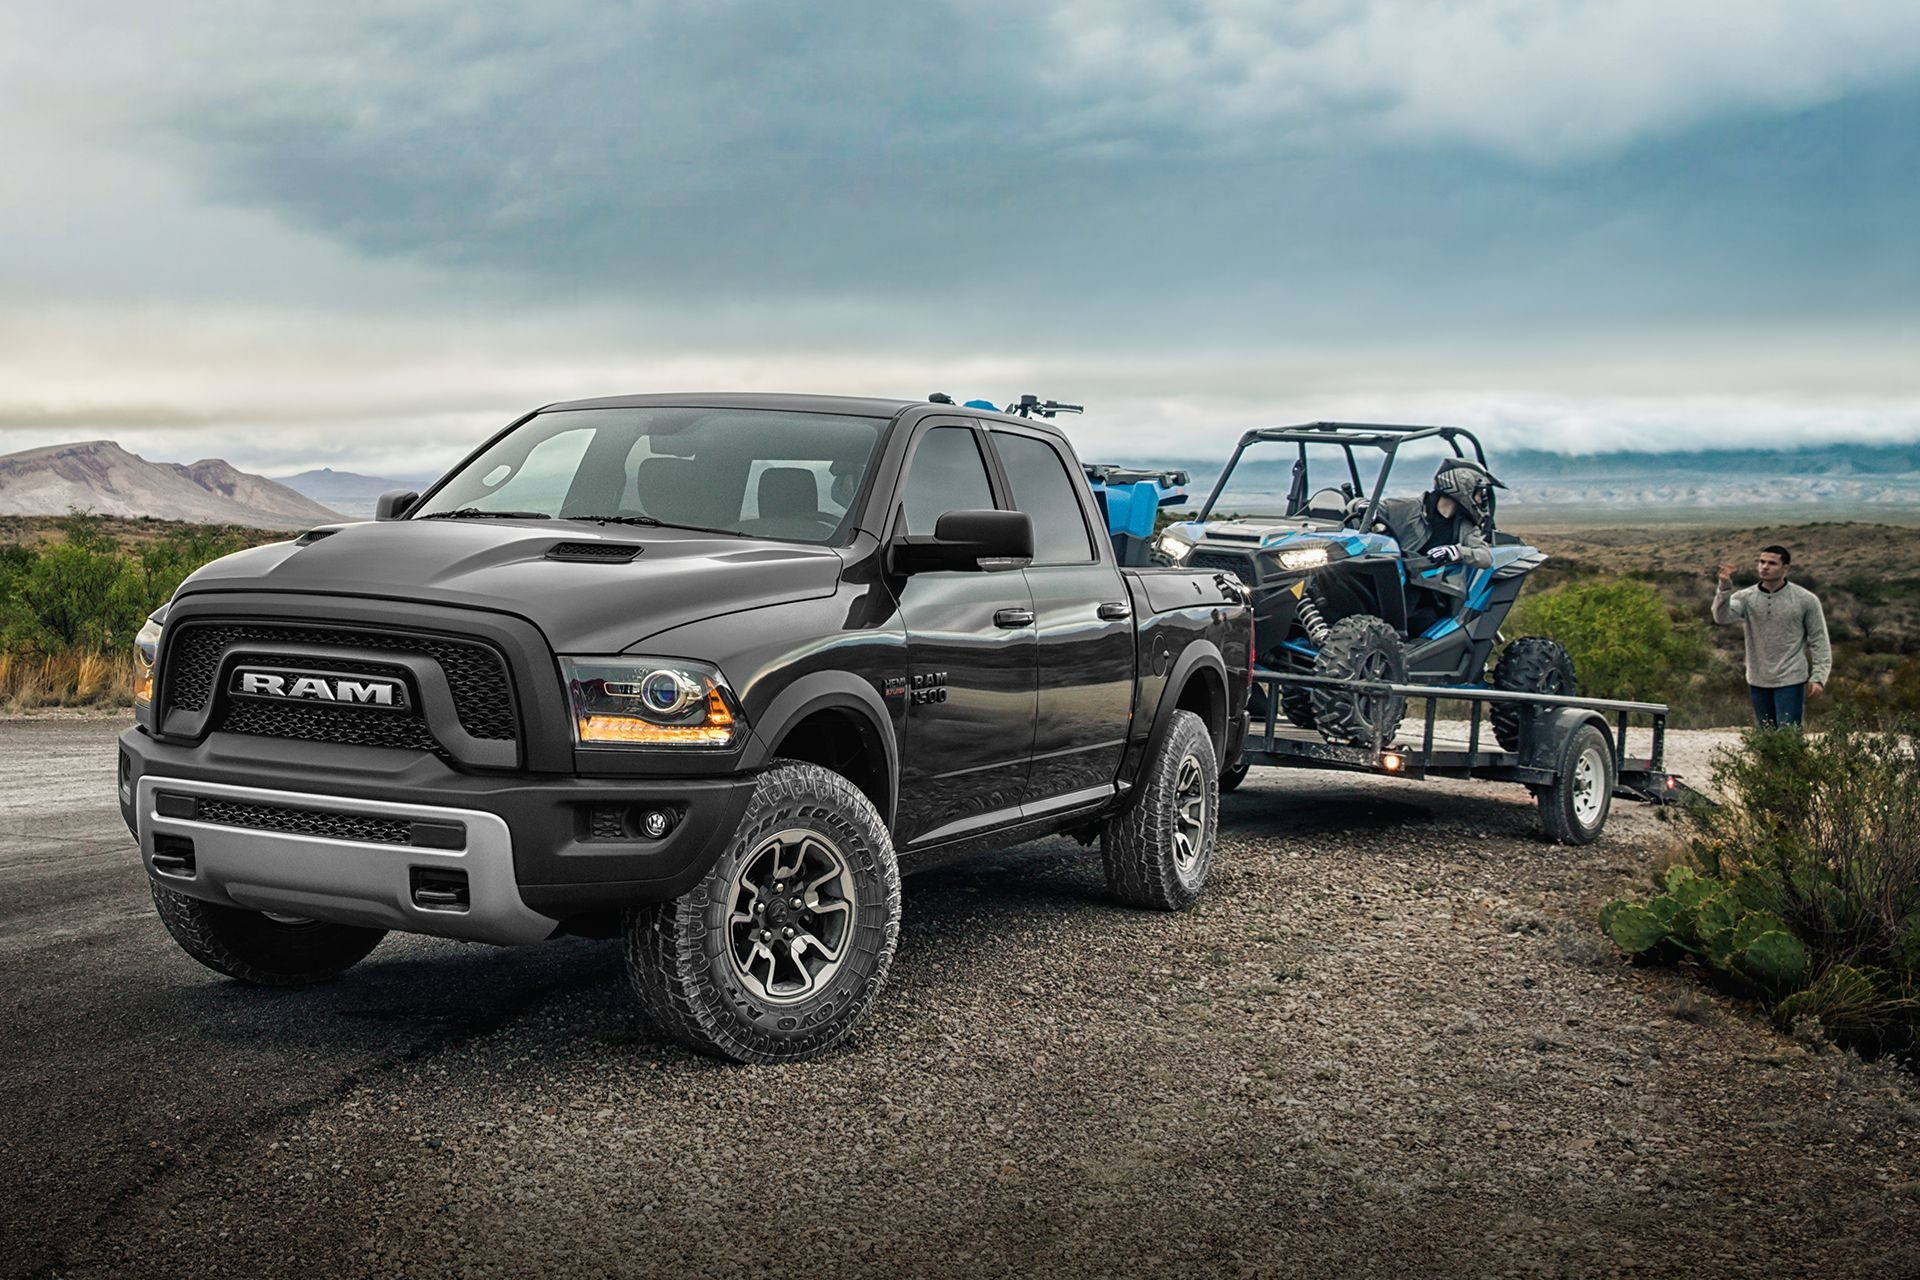 2018 RAM 1500 exterior 4x4 capability with dirt bike